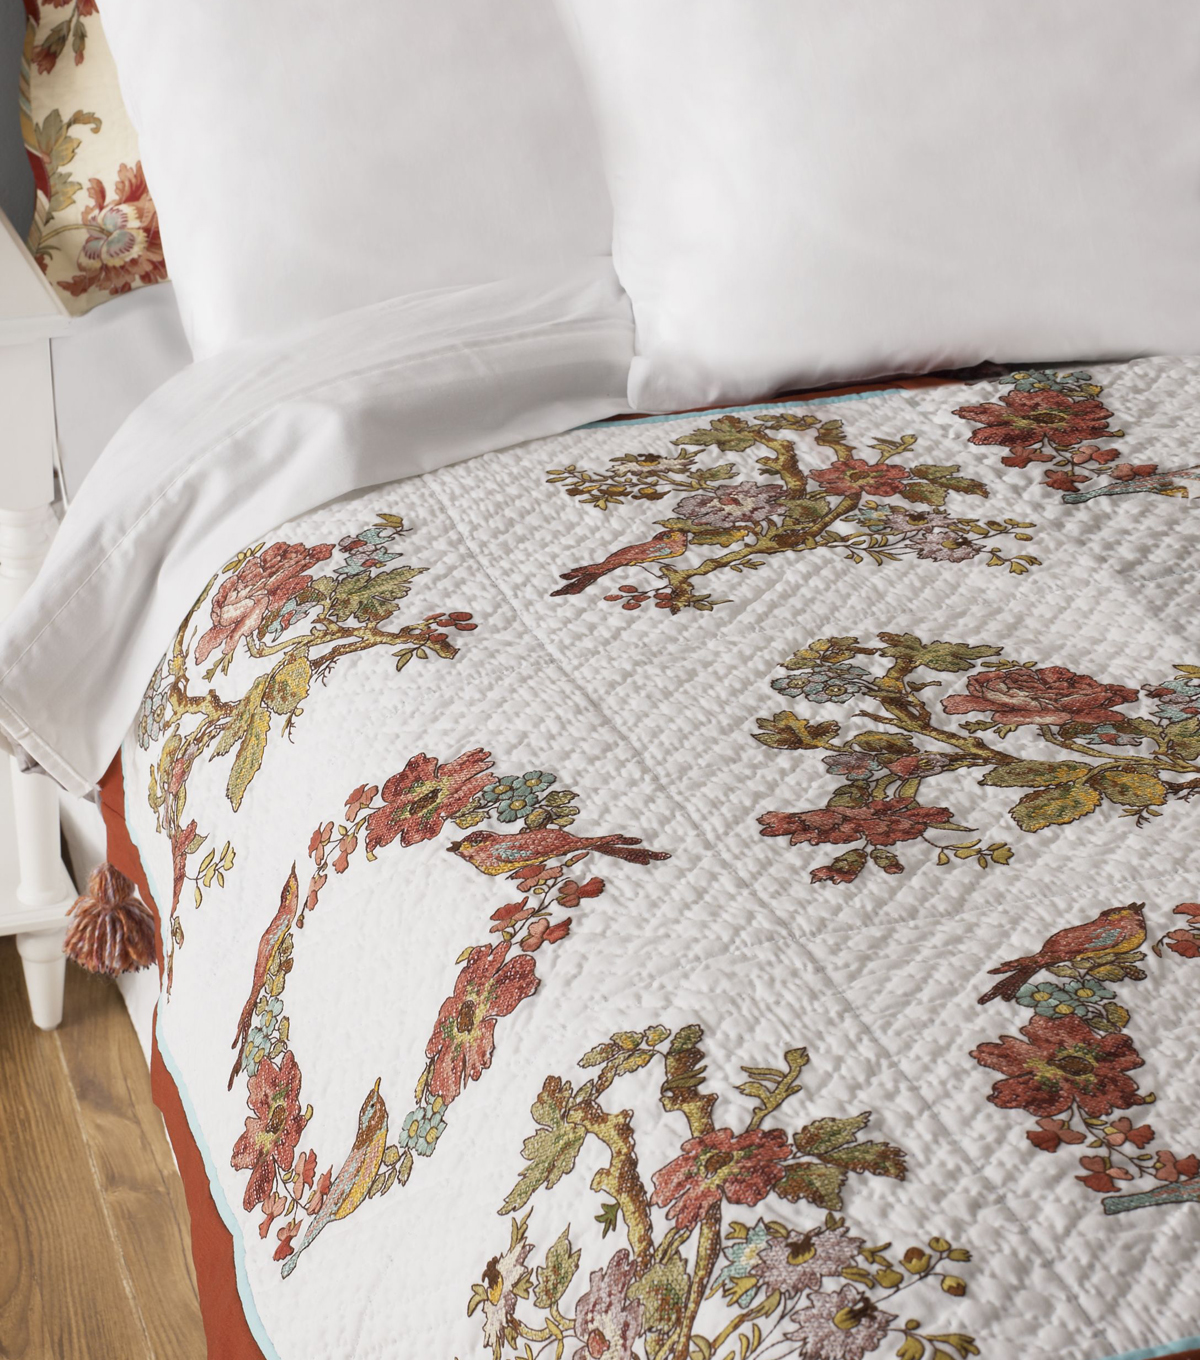 Bucilla Waverly Charleston Chirp Stamped Embroidery Quilt Blocks